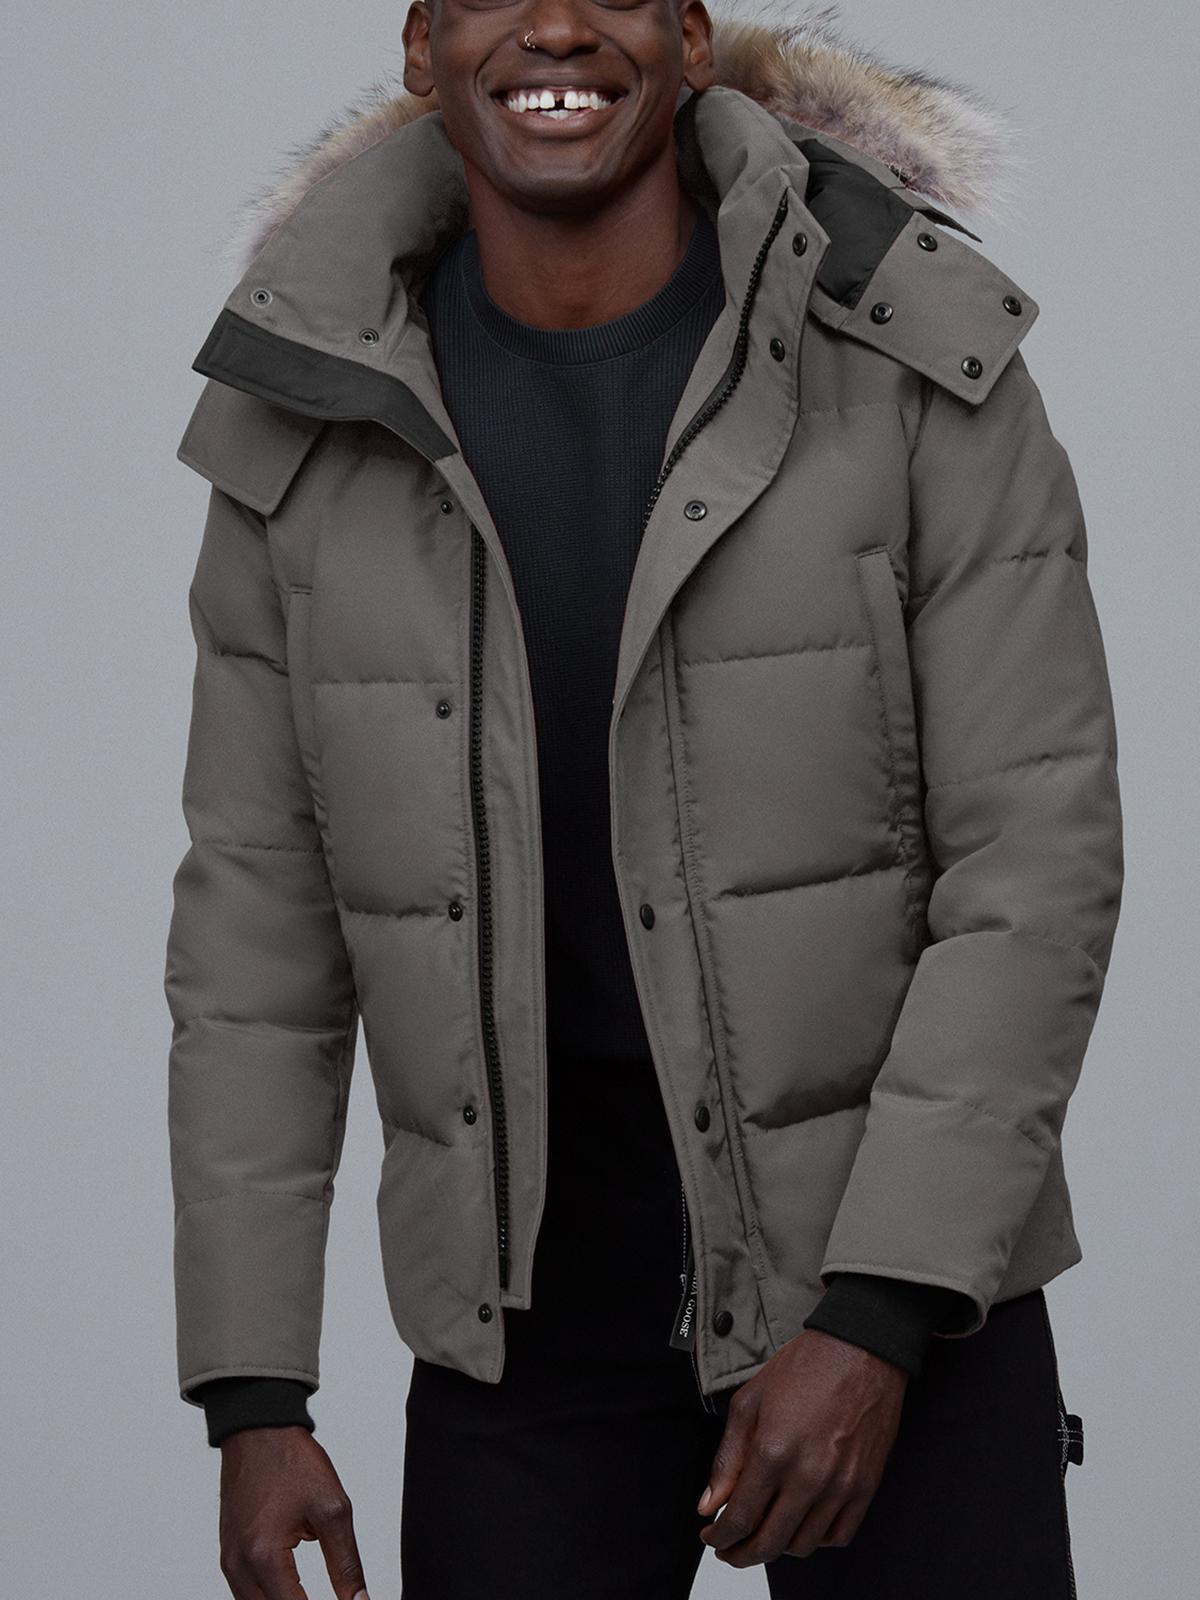 Casual Simple Cotton,Polyester Plain with Cotton Jacket/down Jacket(Plus Size)